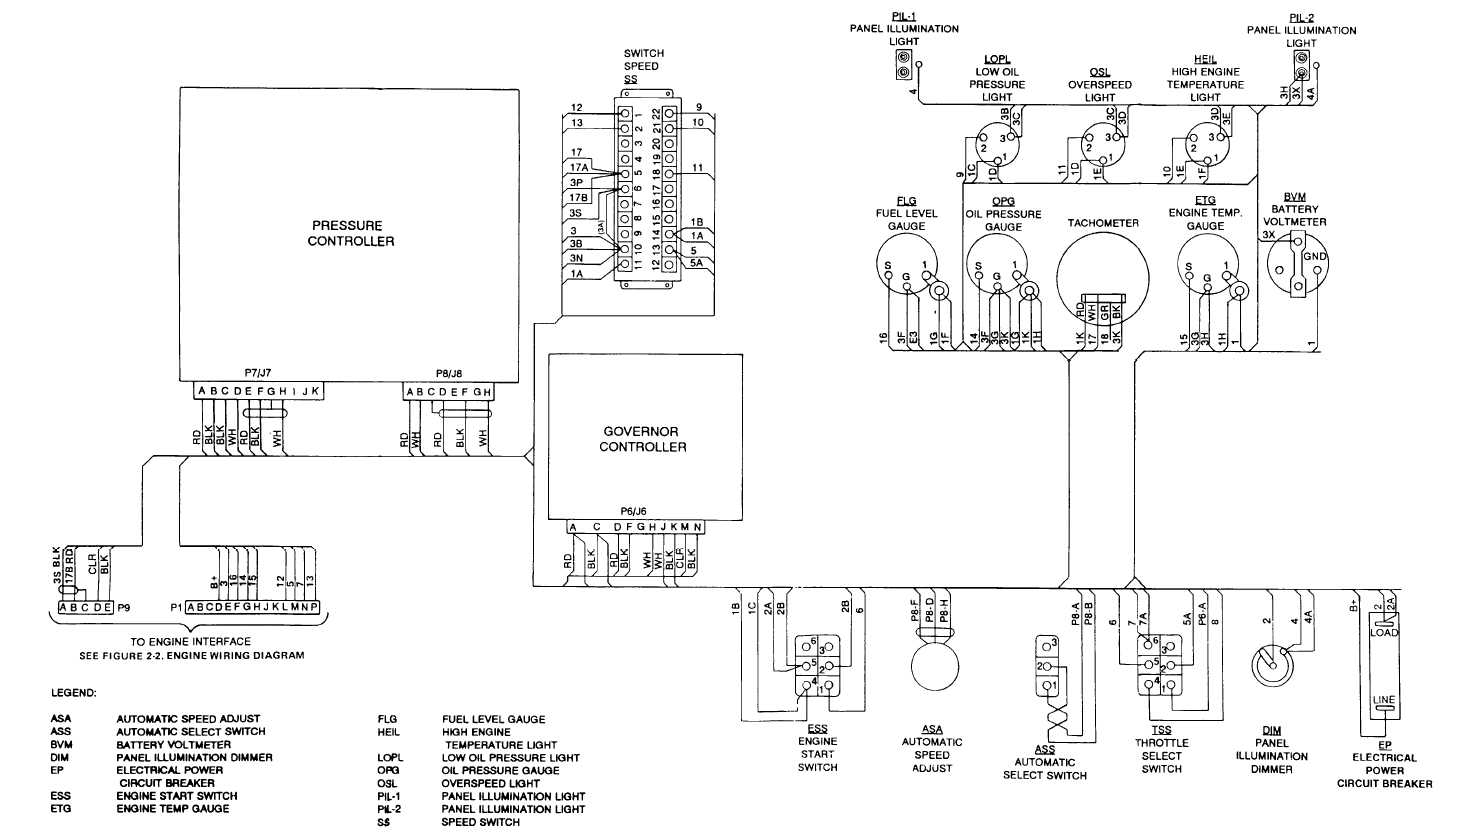 TM 10 4320 315 24_18_1 figure 2 1 control panel wiring diagram (sheet 1 of 4) control panel wiring diagram at creativeand.co